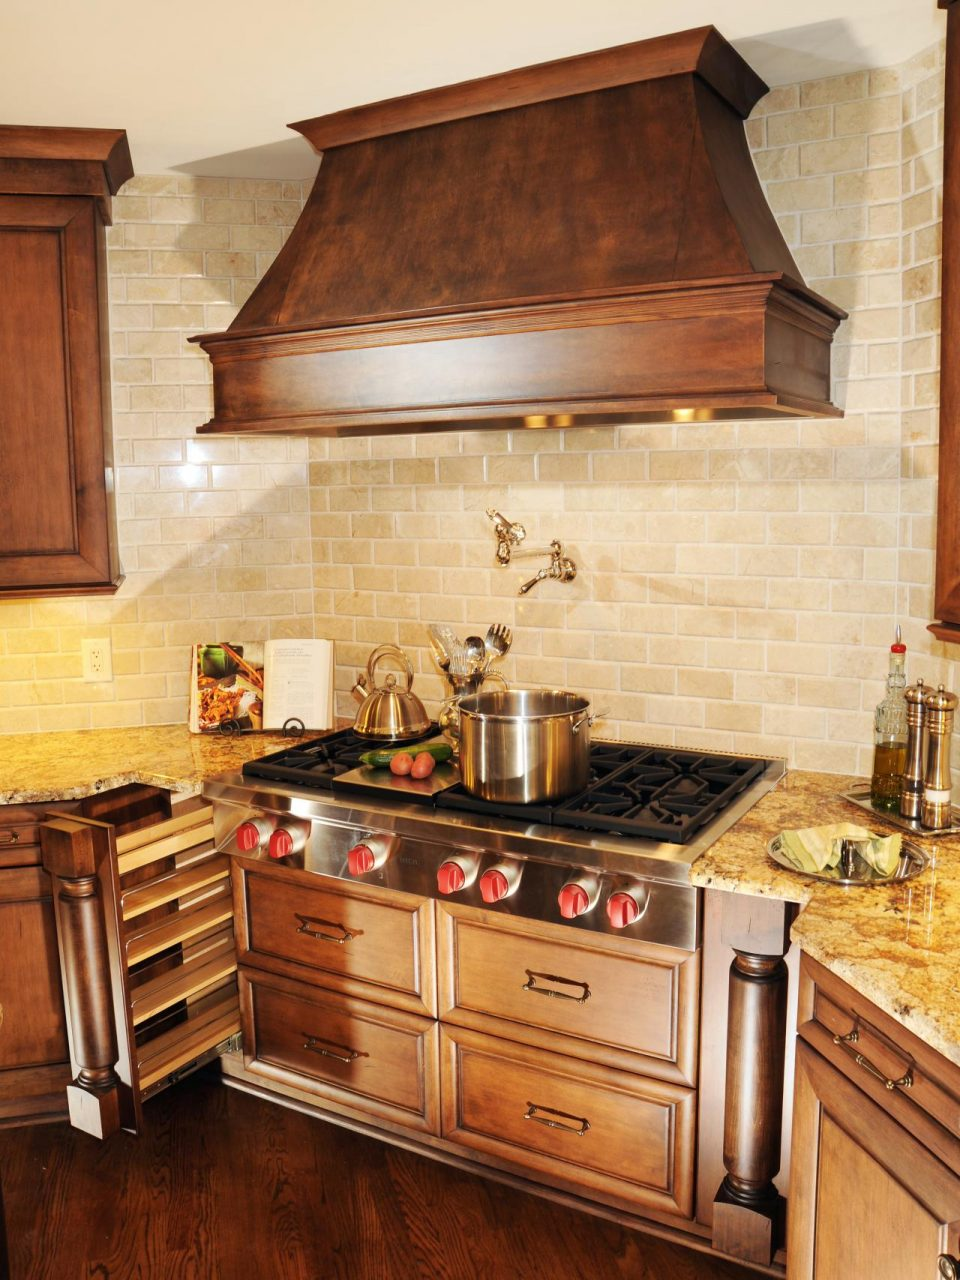 Wonderful Pot Filler Faucet With Copper Range Hood And Cooktop Also